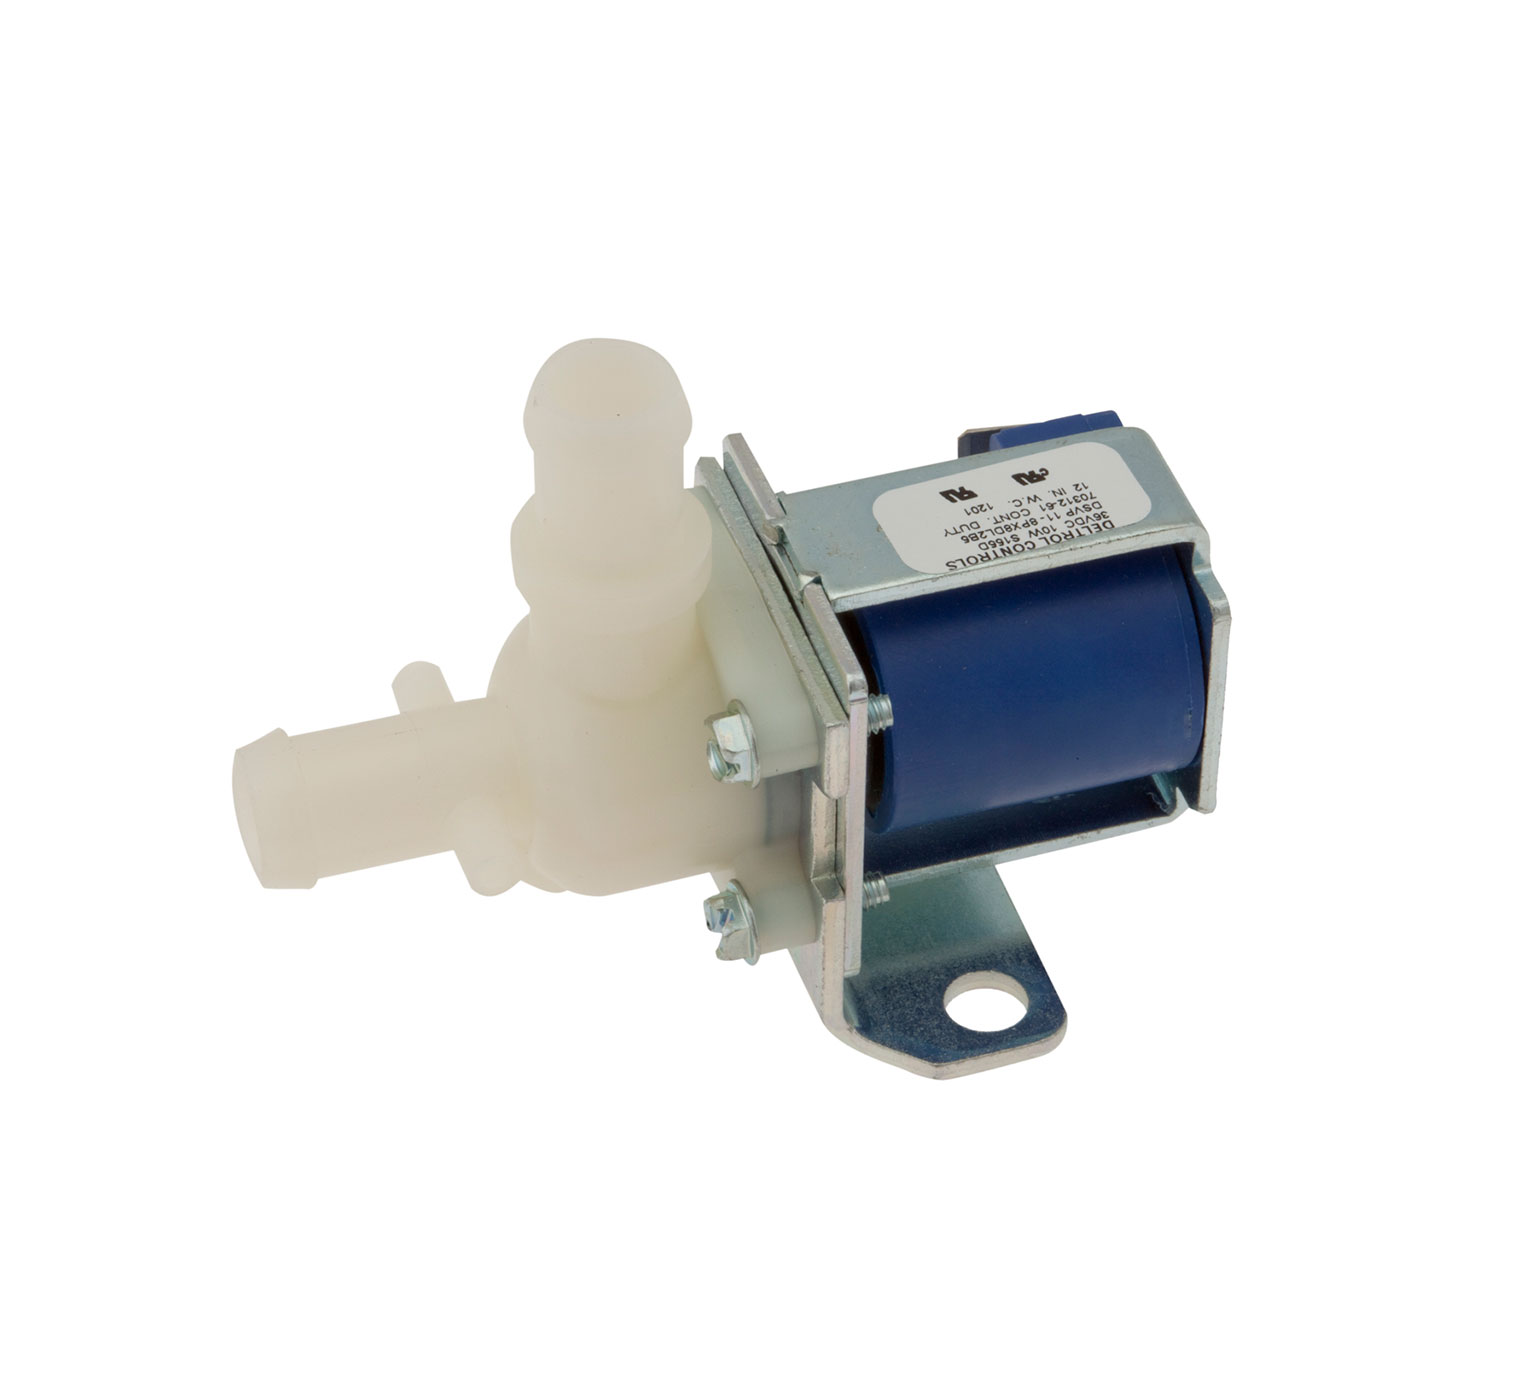 Solution Valve - 24 Volt Fixed - Fits Tennant 1059224